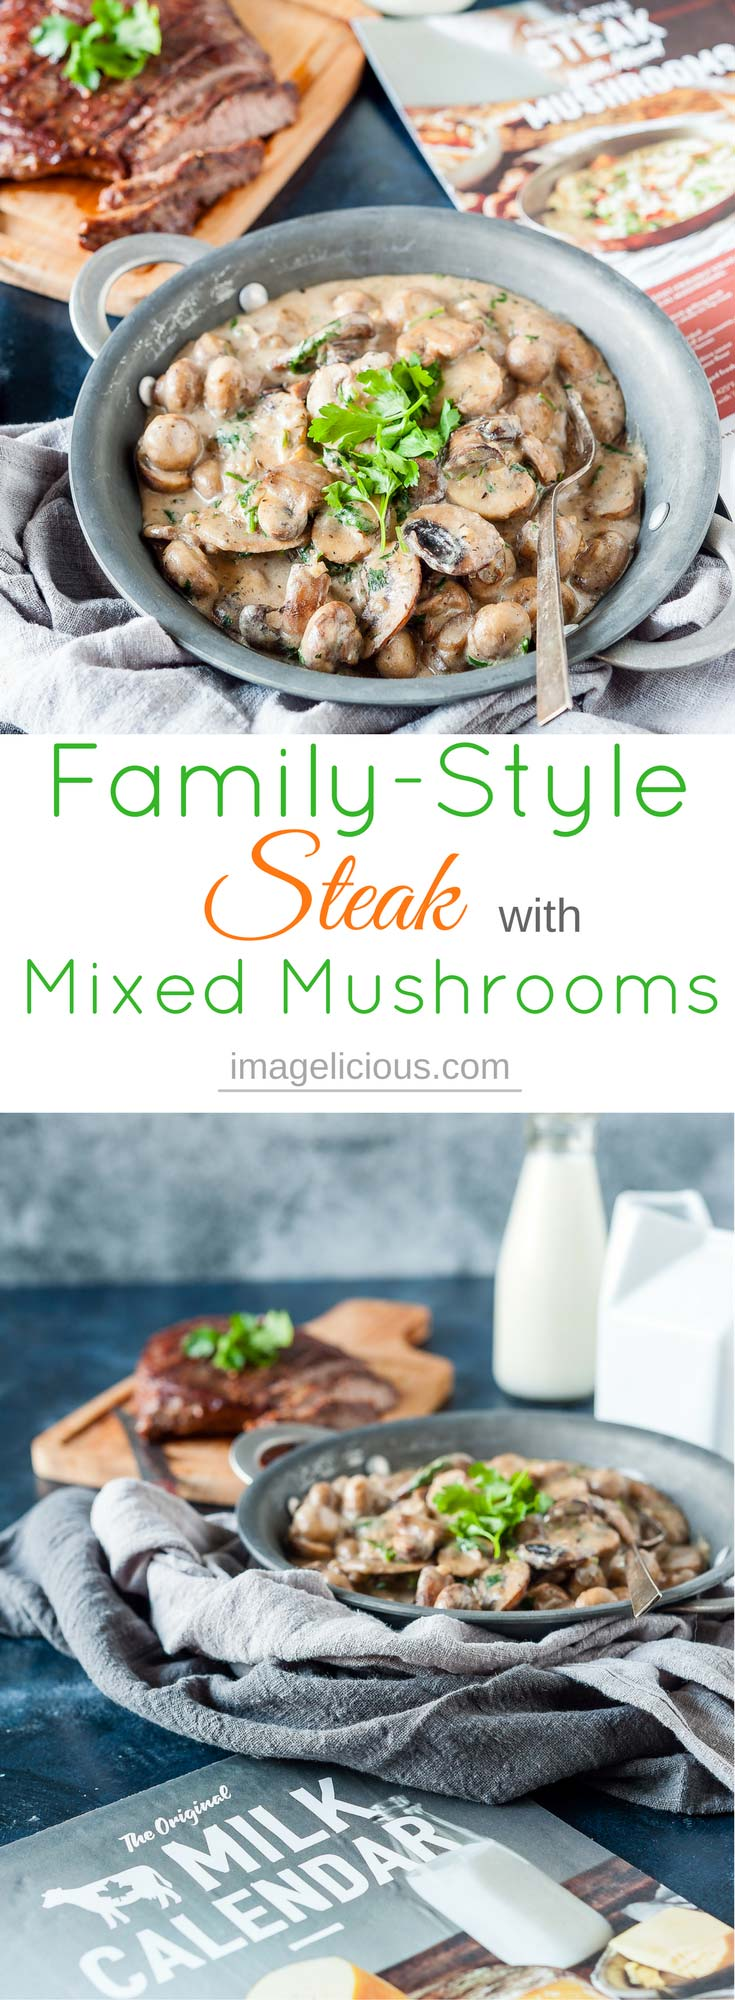 This Family-Style Steak with Mixed Mushrooms is a gourmet meal that comes together quickly and easily. Perfectly cooked steak with creamy mushrooms will satisfy all your restaurant cravings at home | Imagelicious #MilkCalendar #Sponsored #Milk #Steak #Mushrooms #FamilyStyle